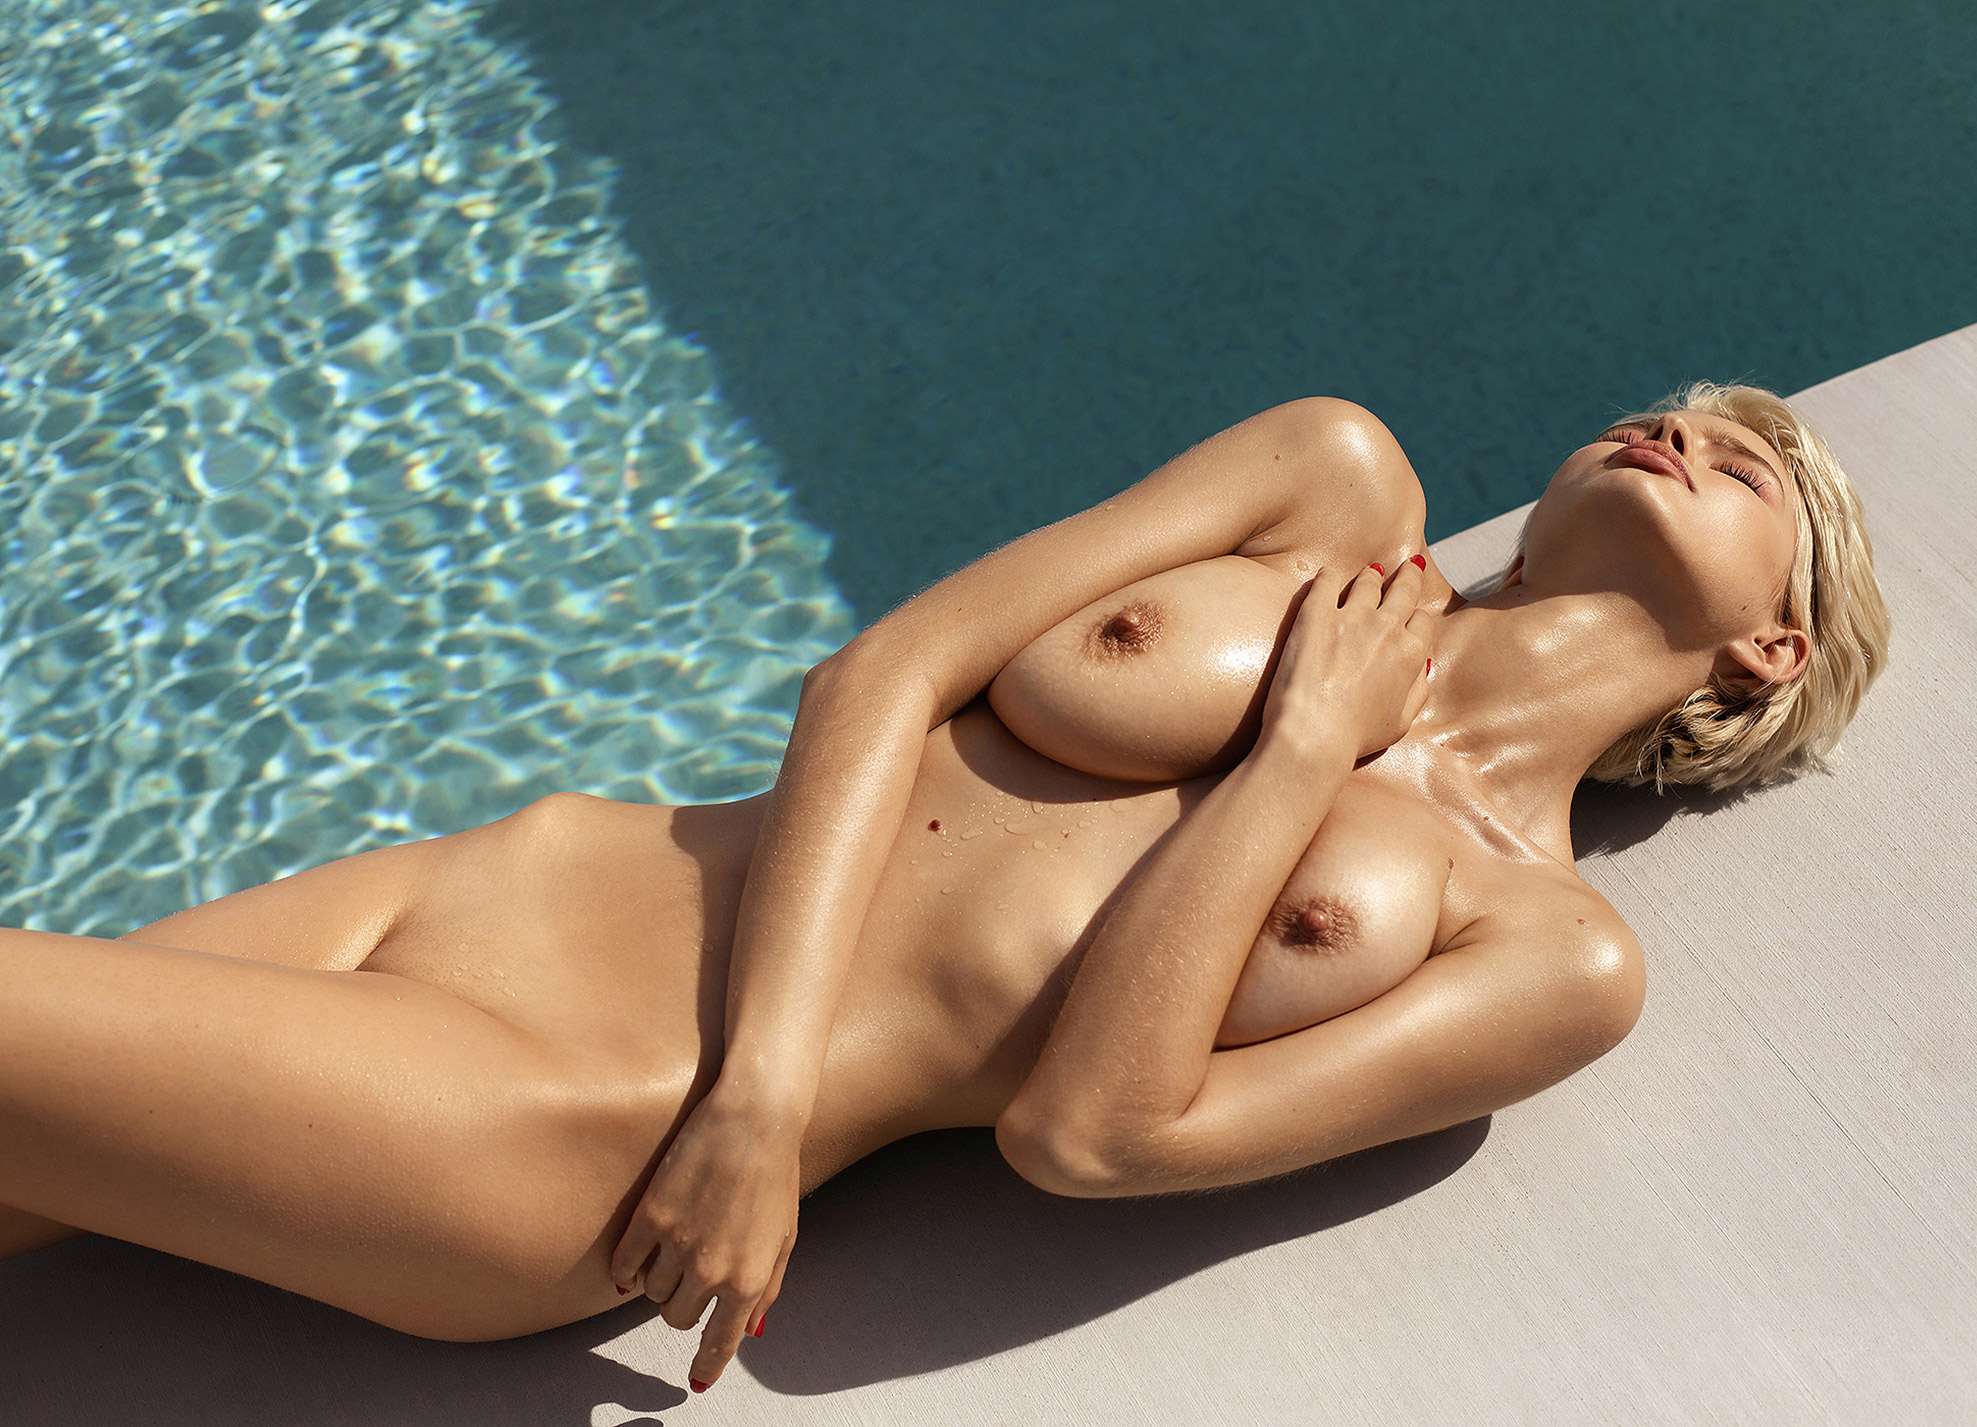 Julia Logacheva nude by Ana Dias / Playboy Netherlands may 2019